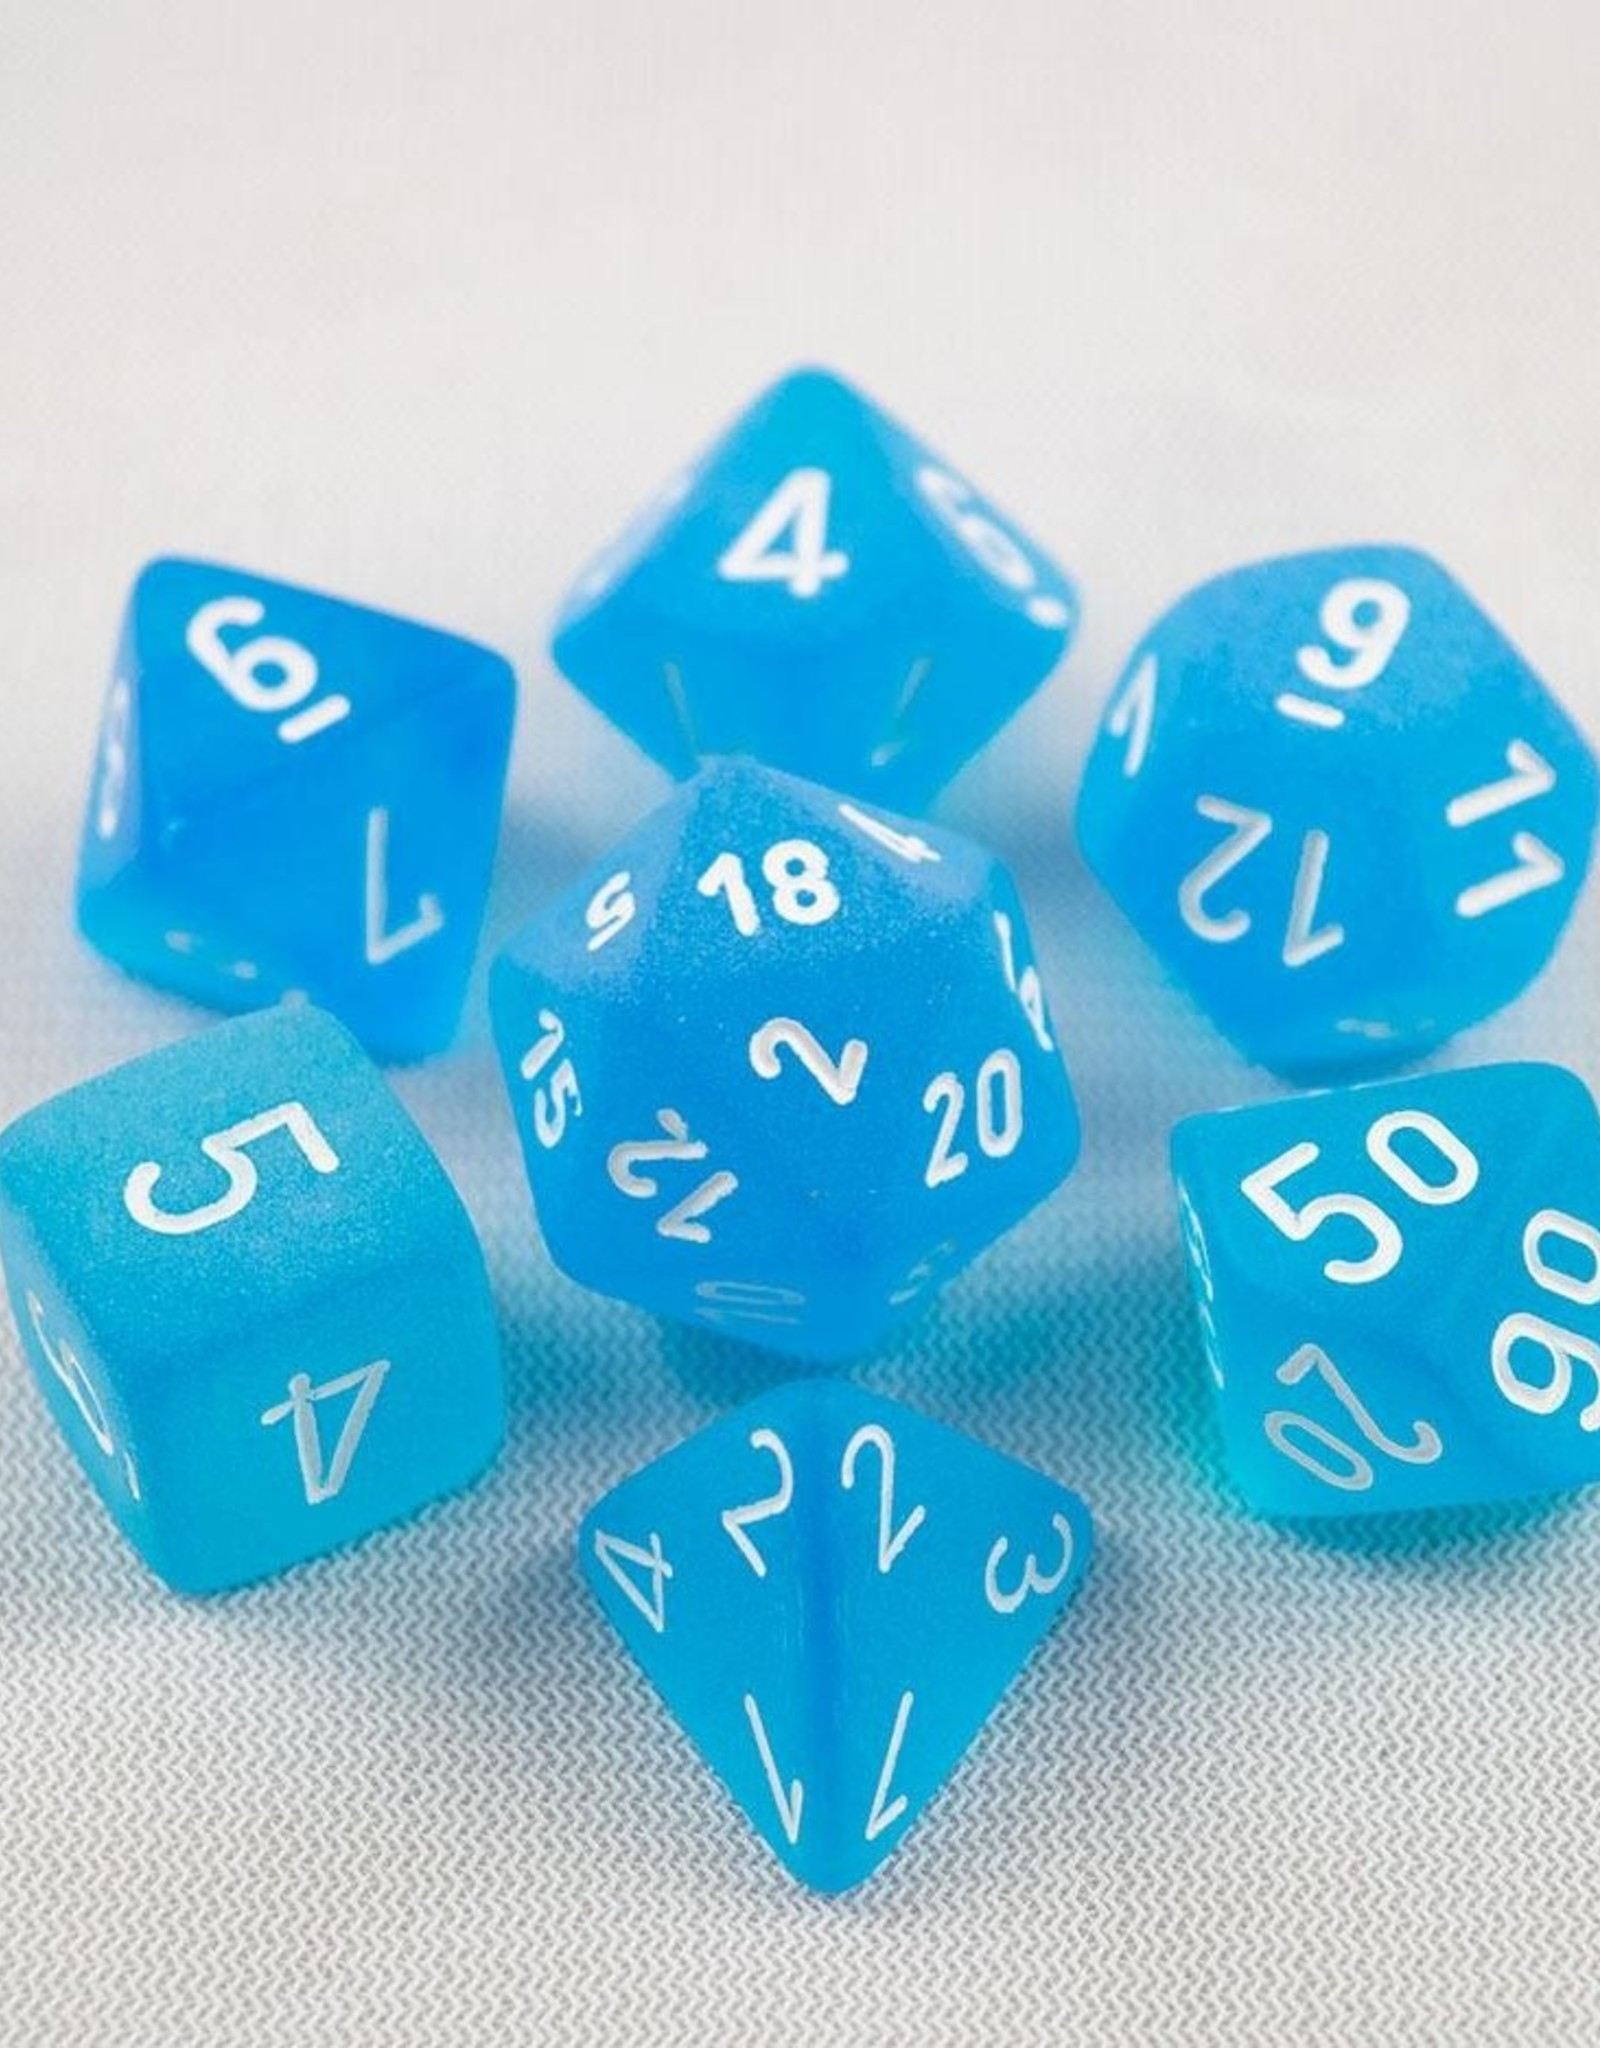 Chessex Chessex 7-Die set Frosted - Caribbean Blue/White